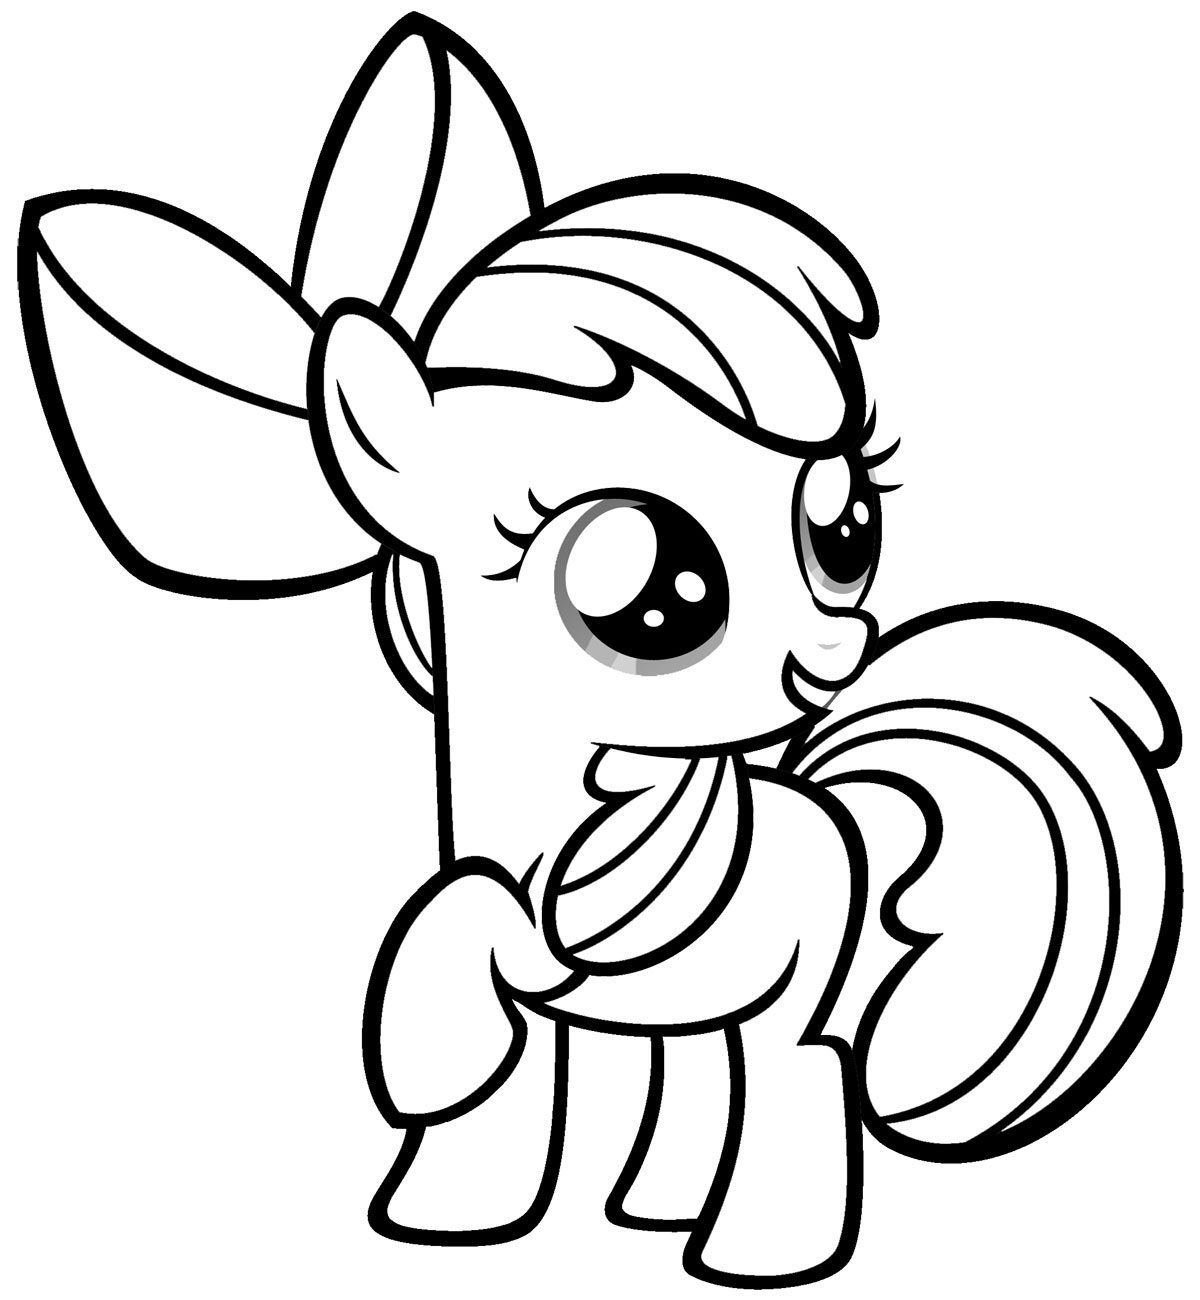 my little pony print out coloring pages my little pony coloring sheets 2018 dr odd pages pony print coloring out little my